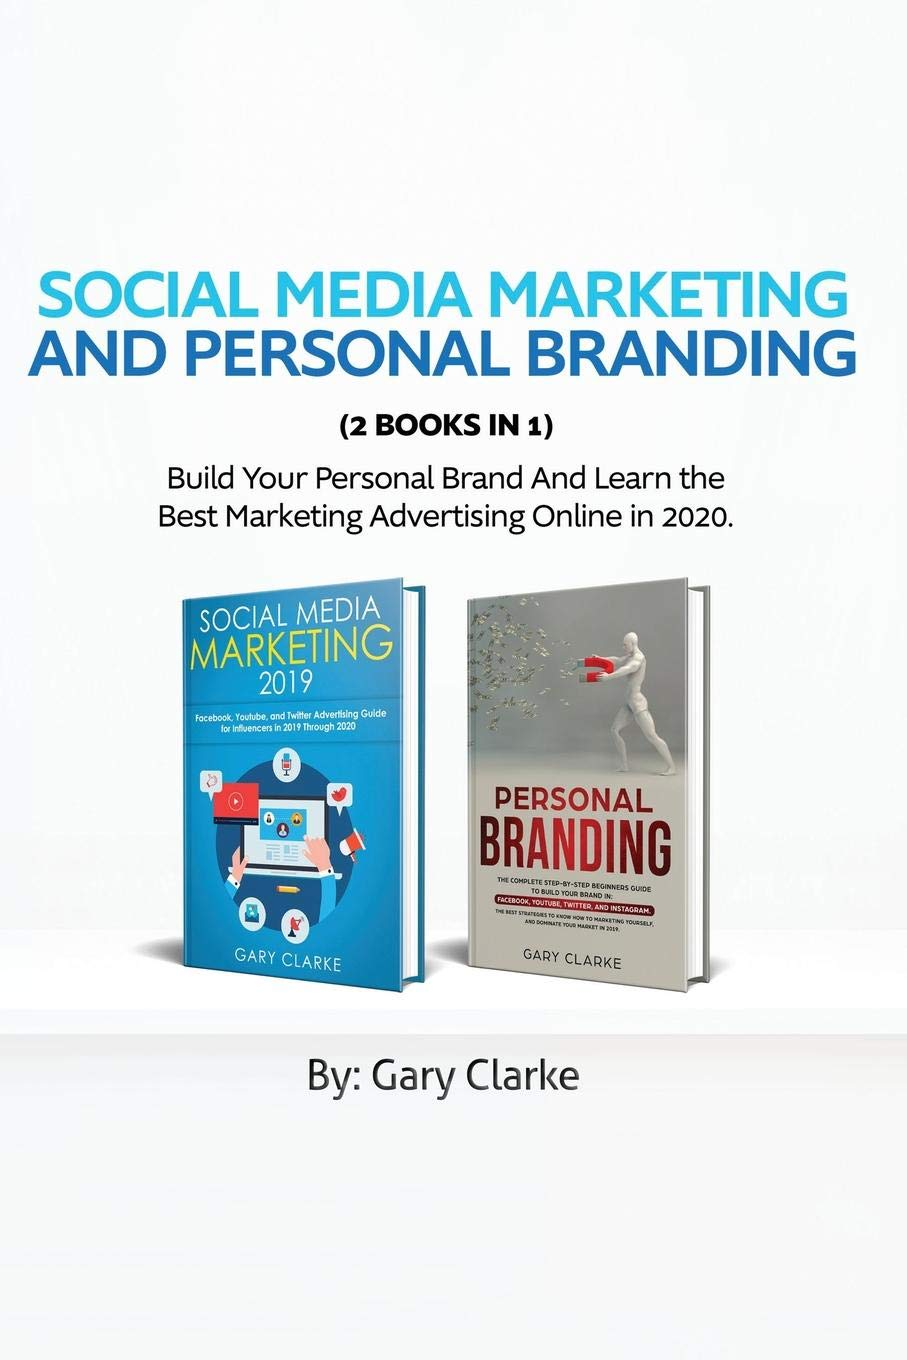 Best Marketing Books 2020 Social Media Marketing and Personal Branding 2 books in 1: Build